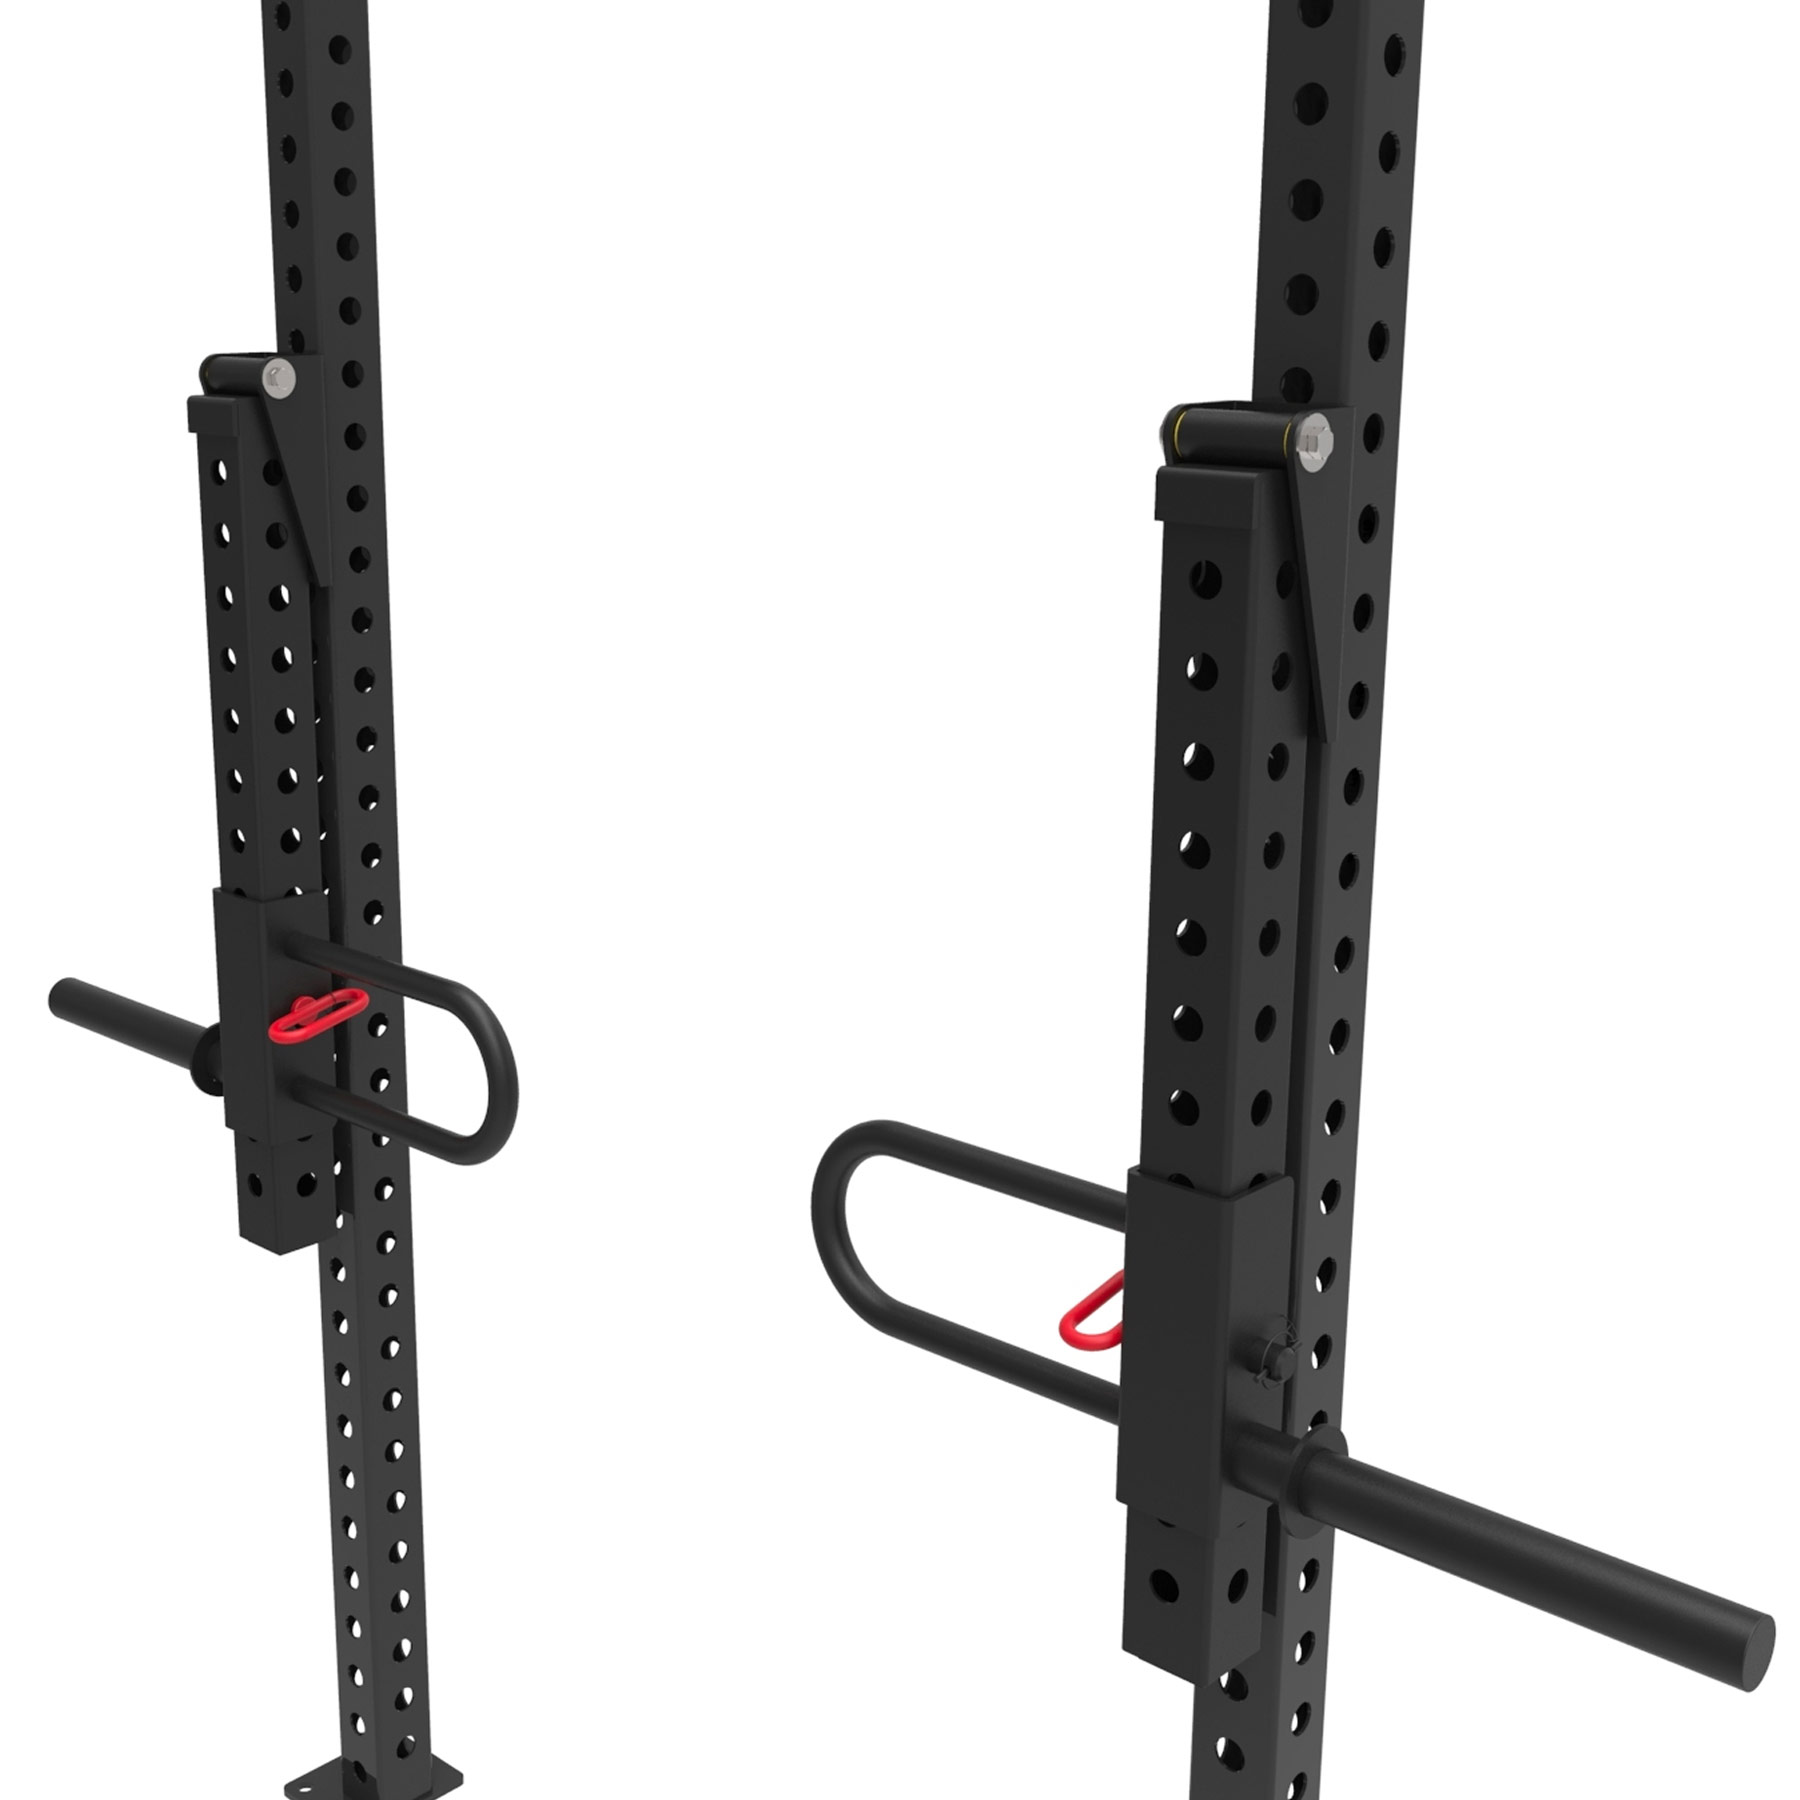 Adjustable Jammer Arms for Half & Power Racks